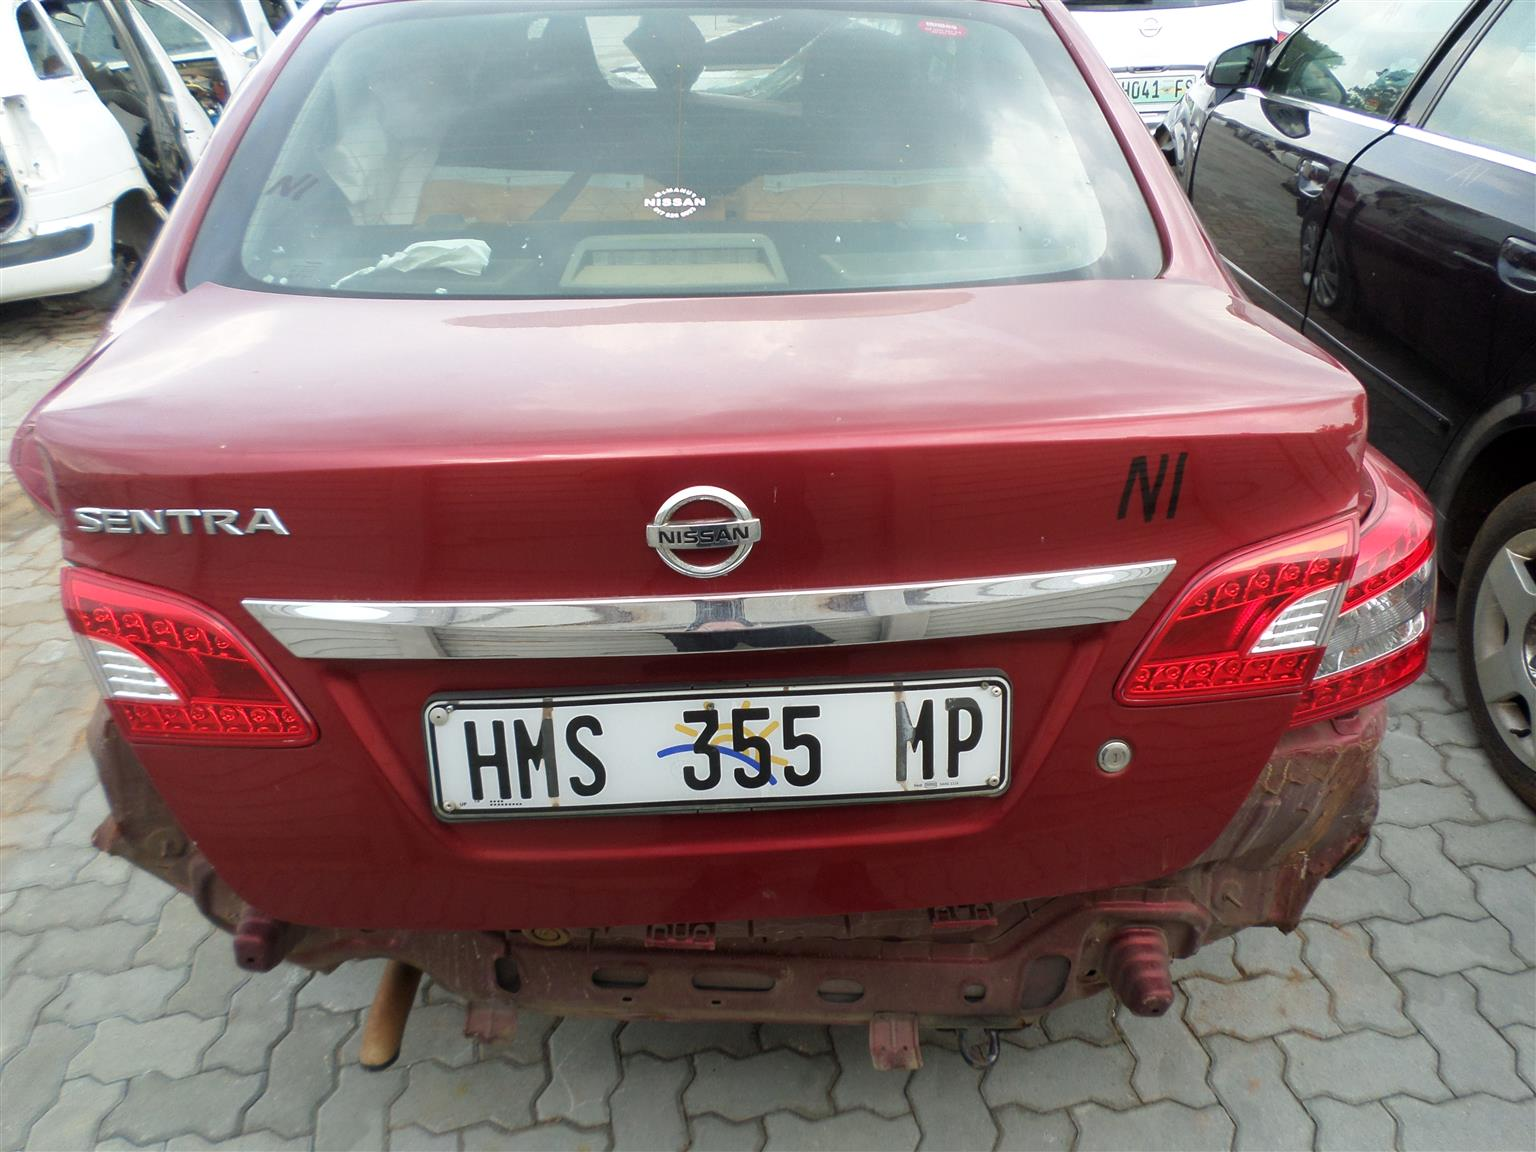 Nissan sentra 1.6 Acenta 2013 stripping for all parts